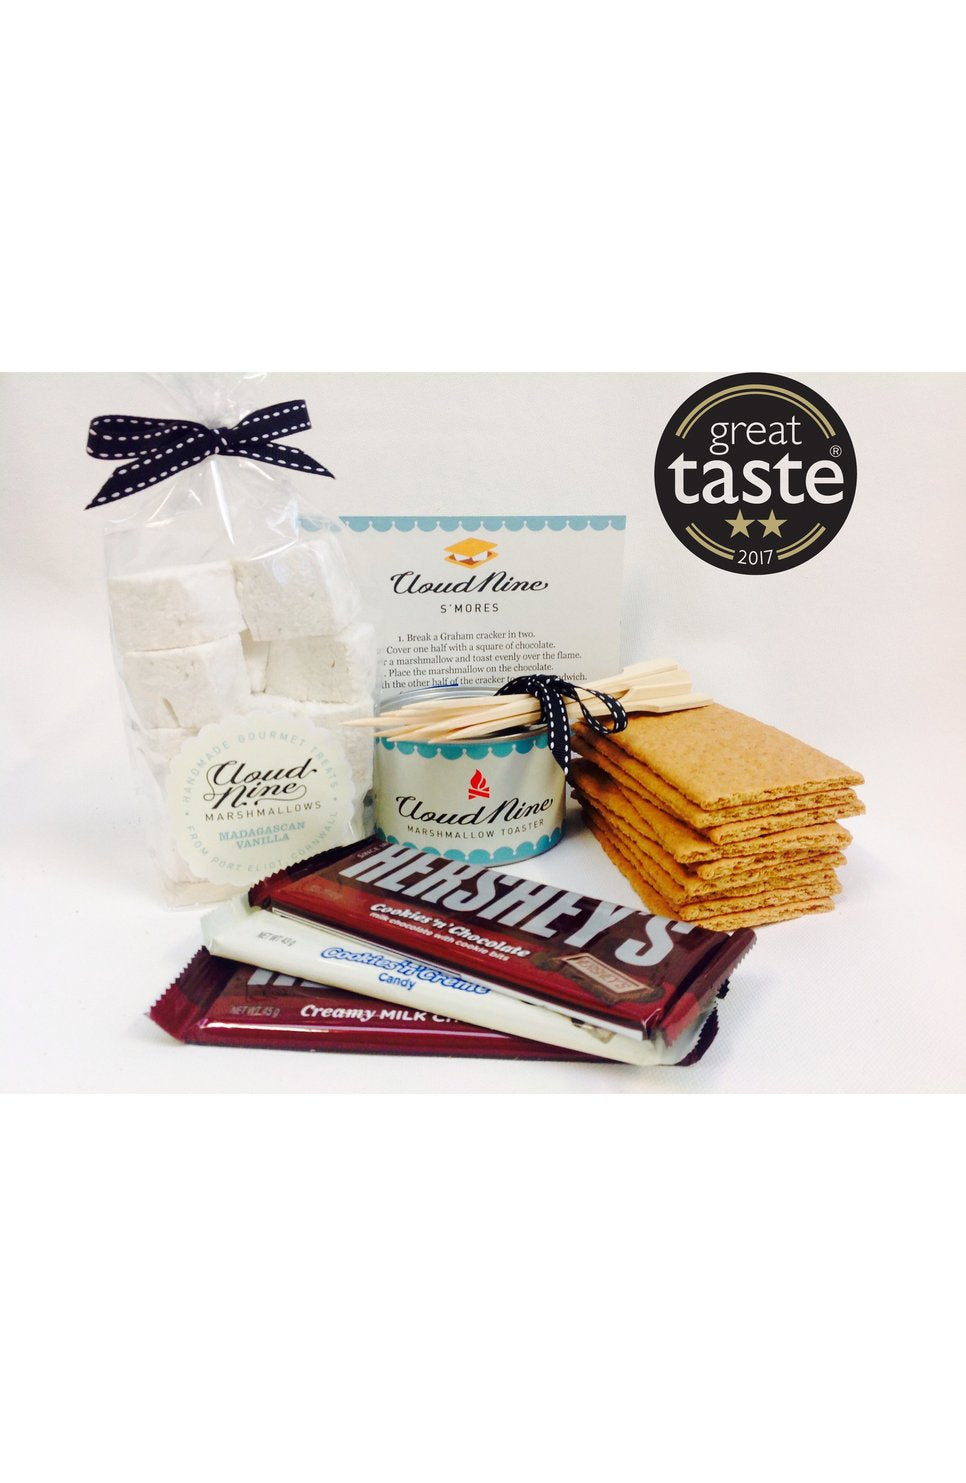 Cloud Nine S'mores Kit